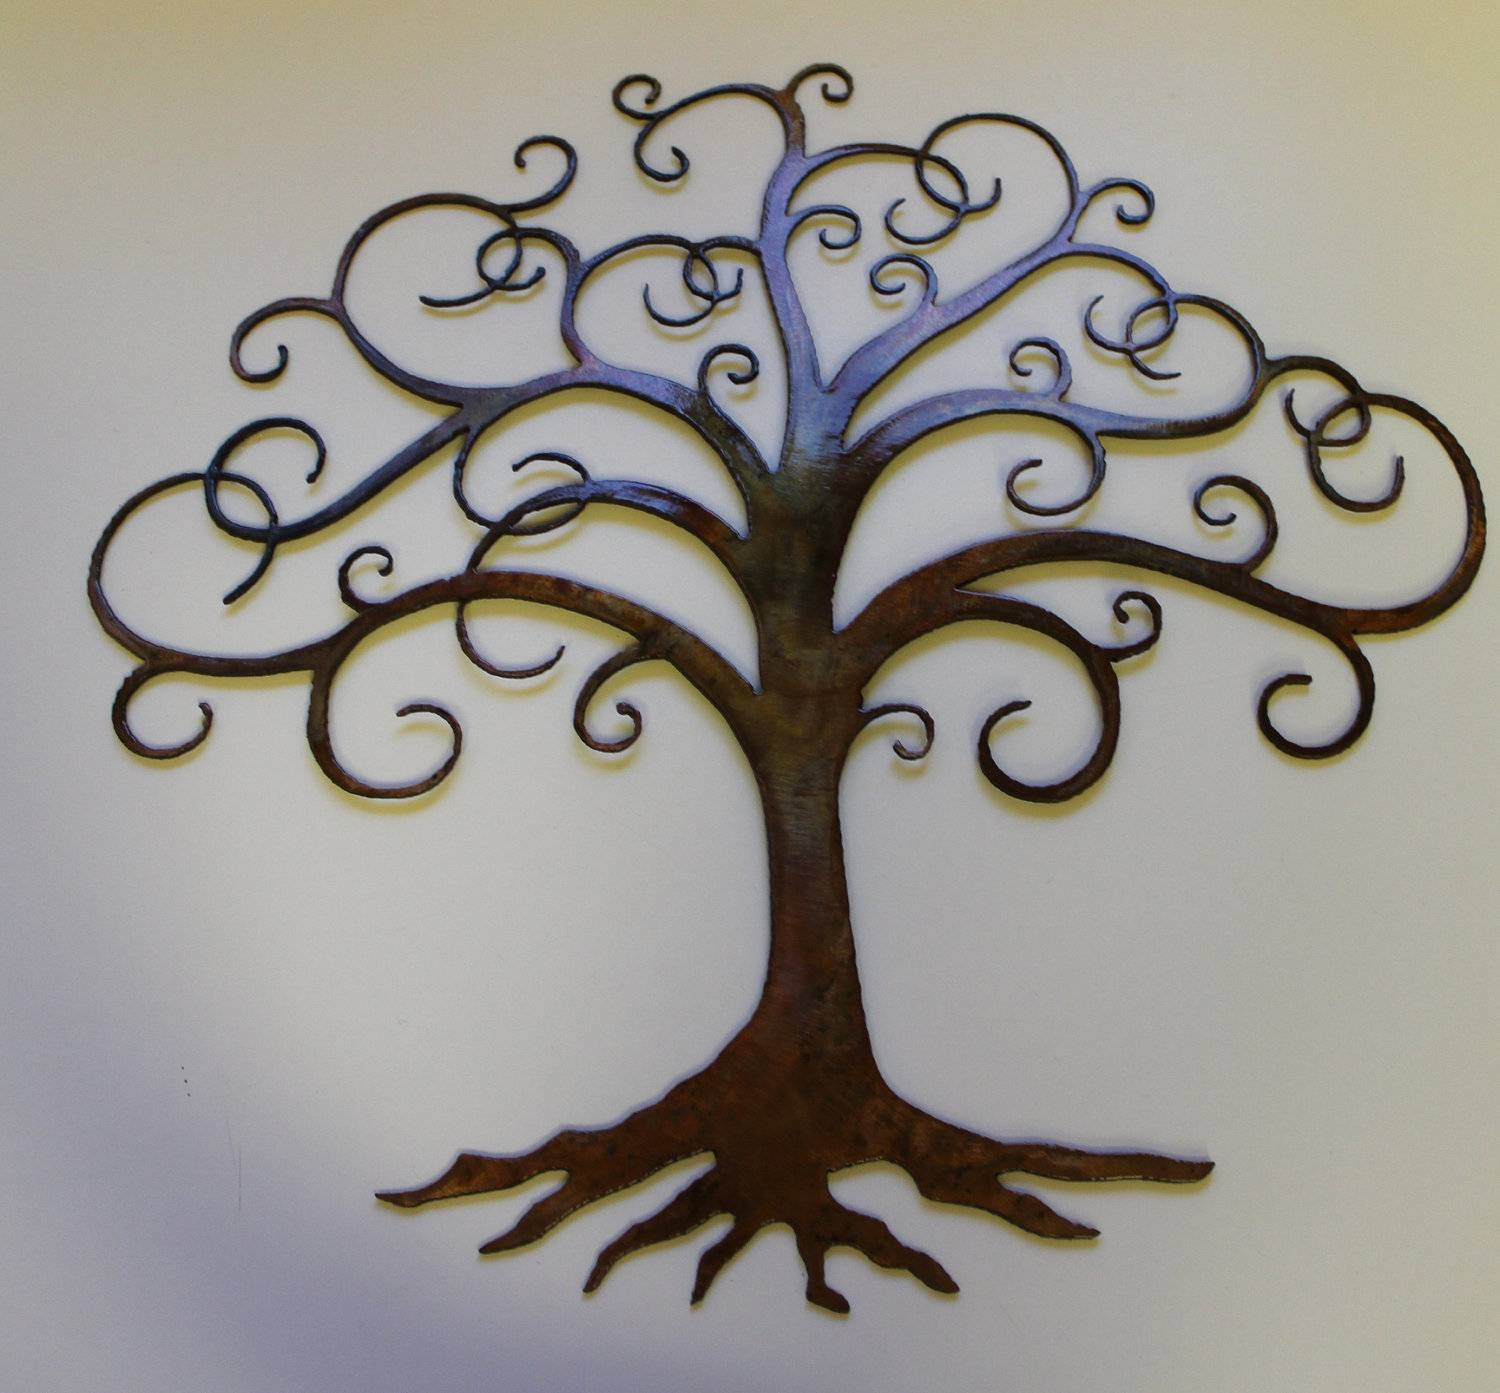 Outdoor Metal Wall Art Decor : Outdoor Metal Wall Art Design Ideas With Regard To Best And Newest Celtic Tree Of Life Wall Art (View 16 of 30)